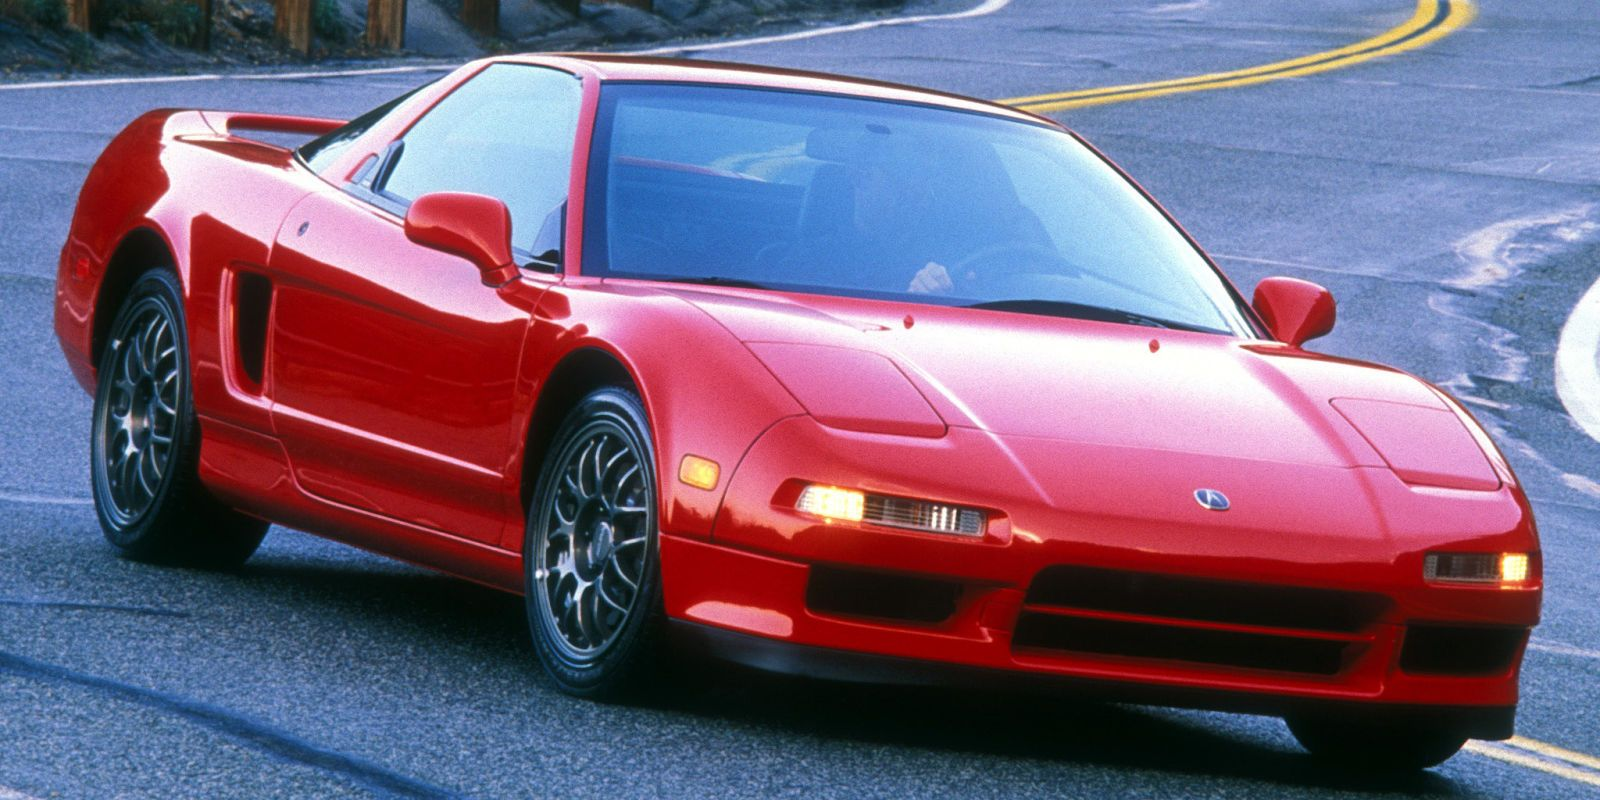 Thirteen Cars From the 90s That Still Look Modern Today